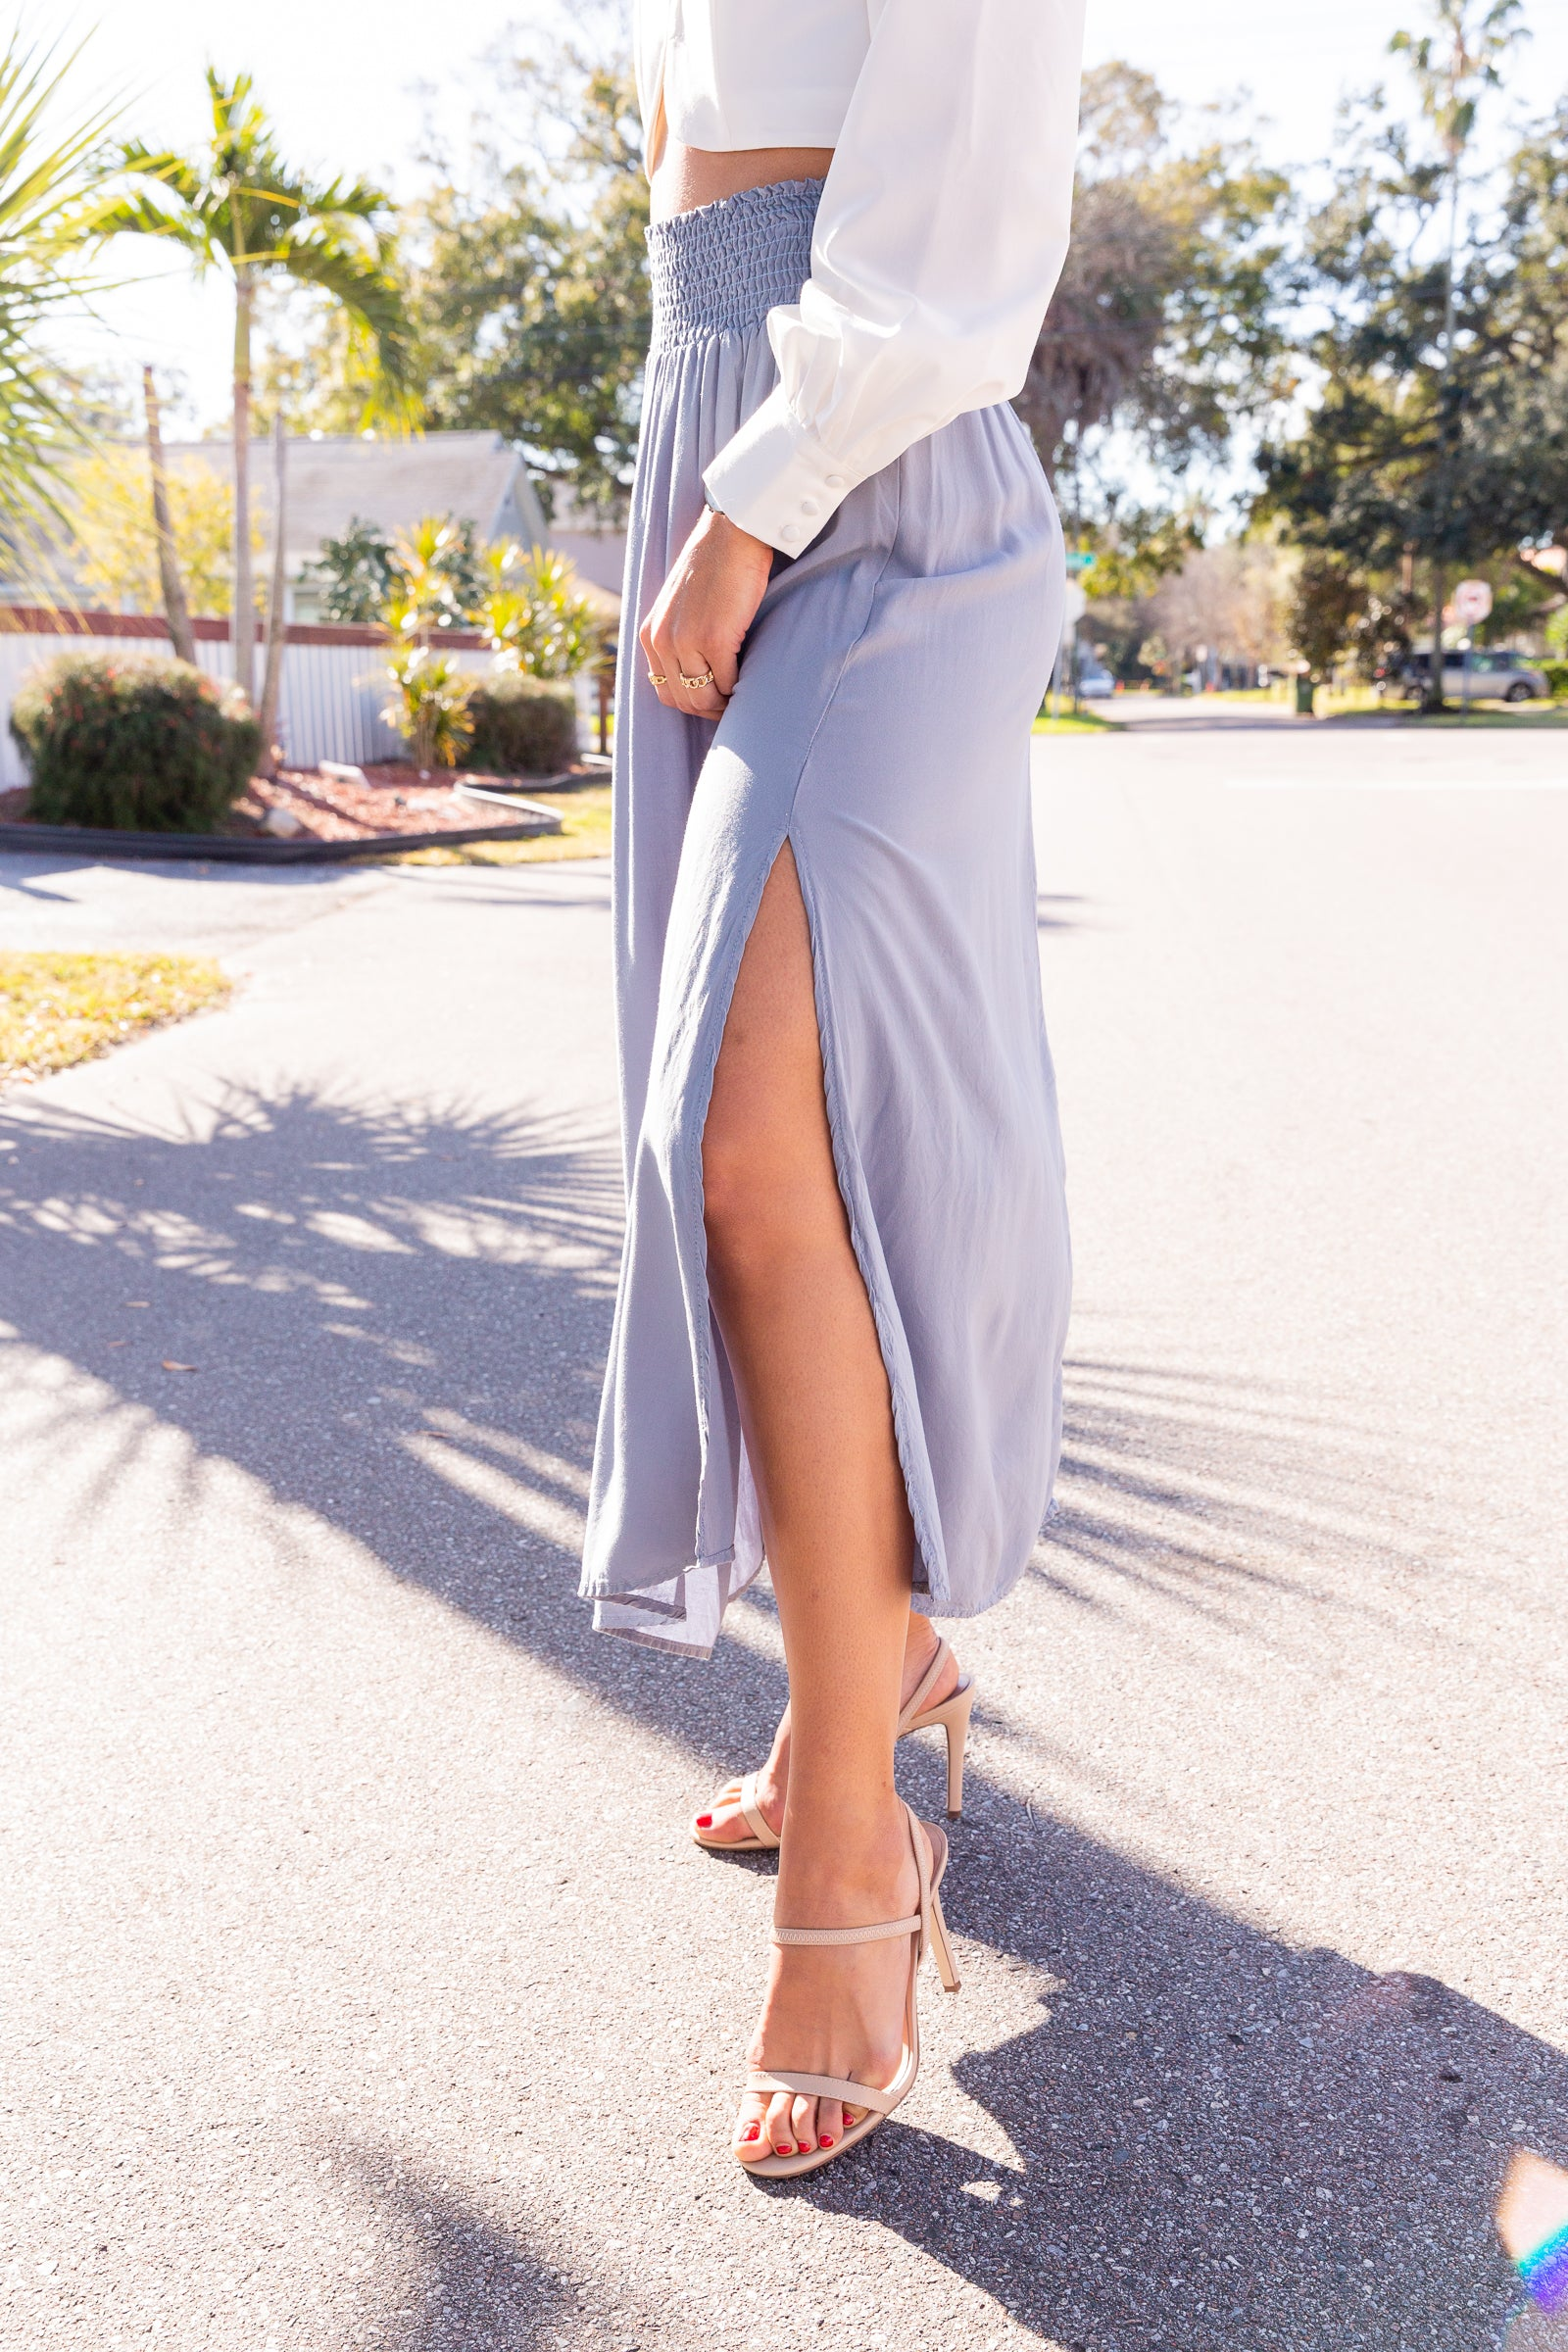 This lightweight maxi skirt has a smocked waistline that offers some stretch as it leads into a flowy skirt silhouette that hits at the ankles with a slit at the side.